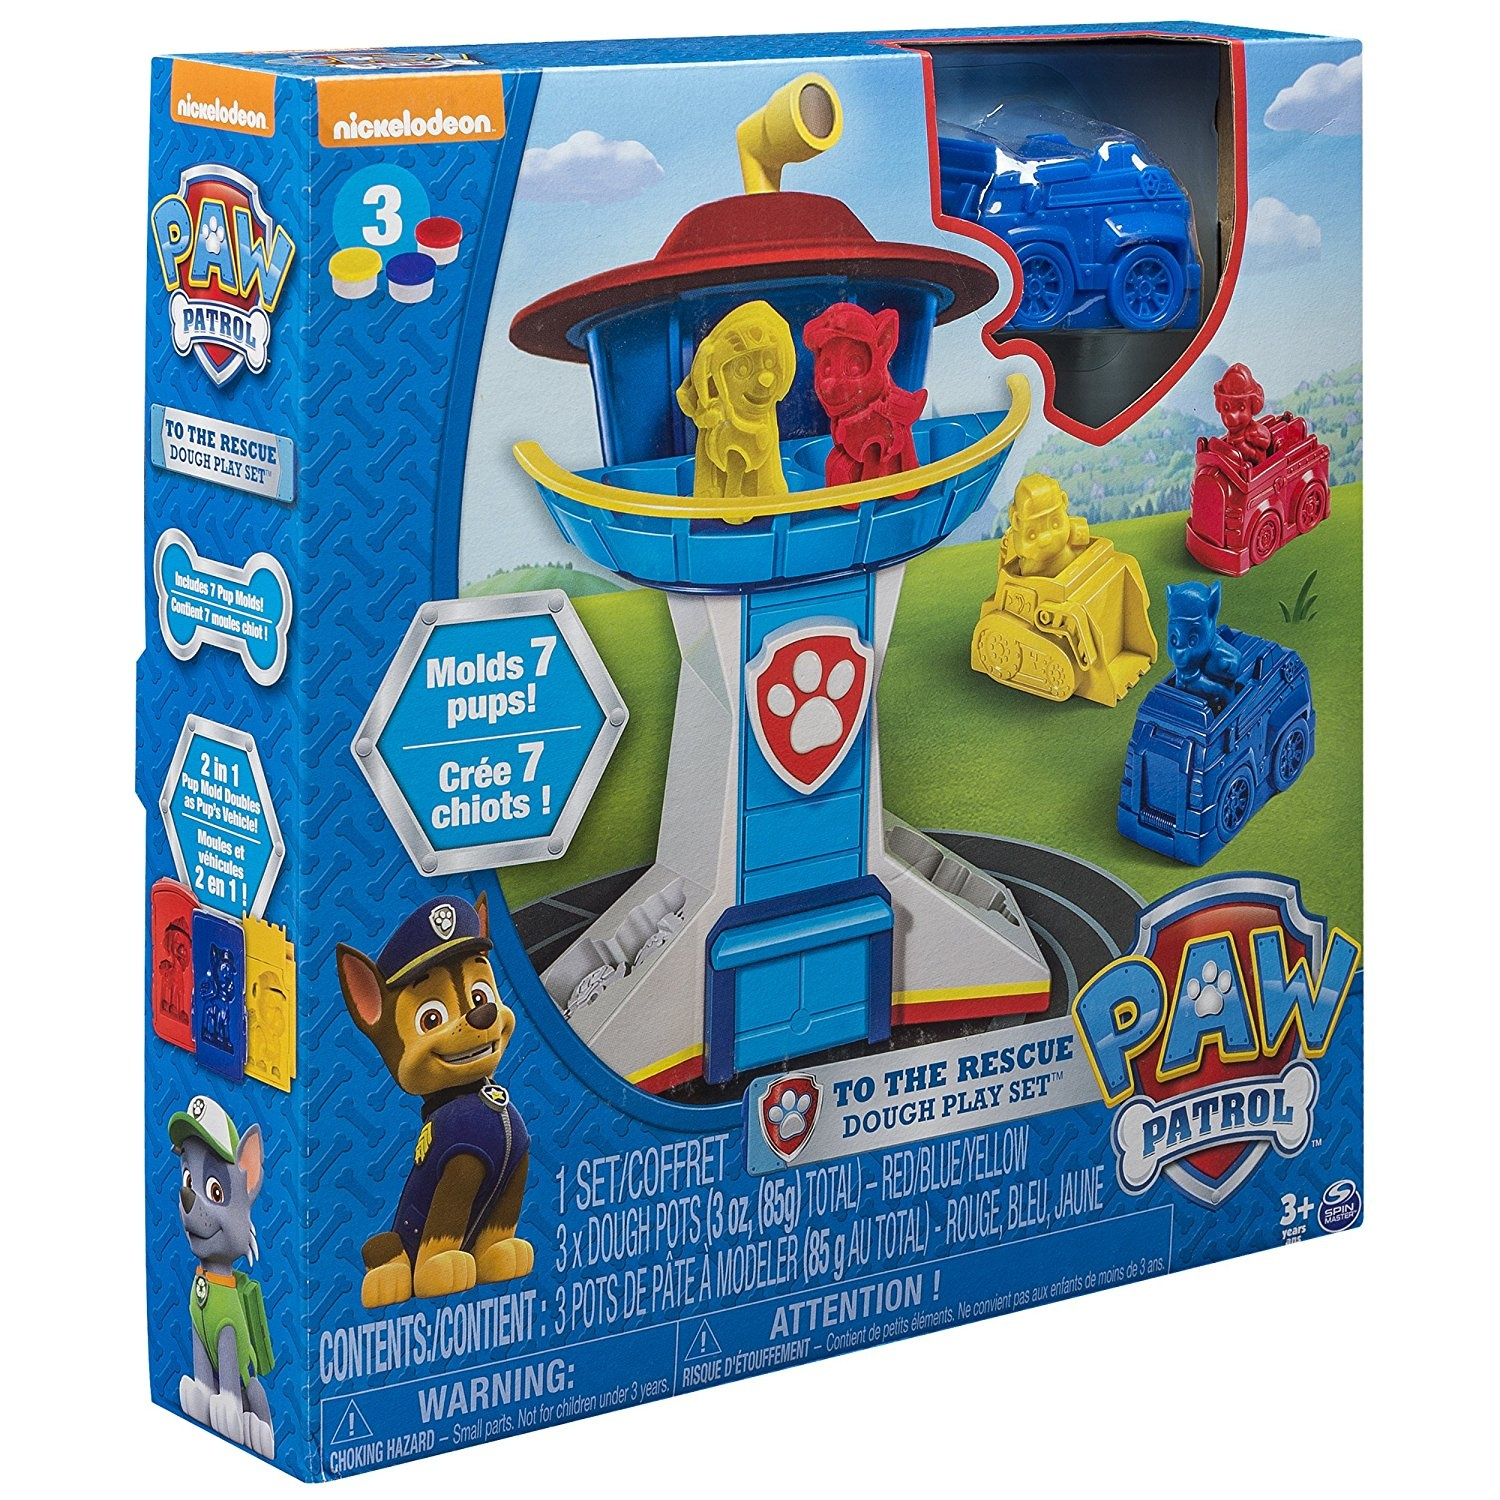 Play Doh Nickelodeon Rescue Marshall Play Set Play Doh Plus Compound